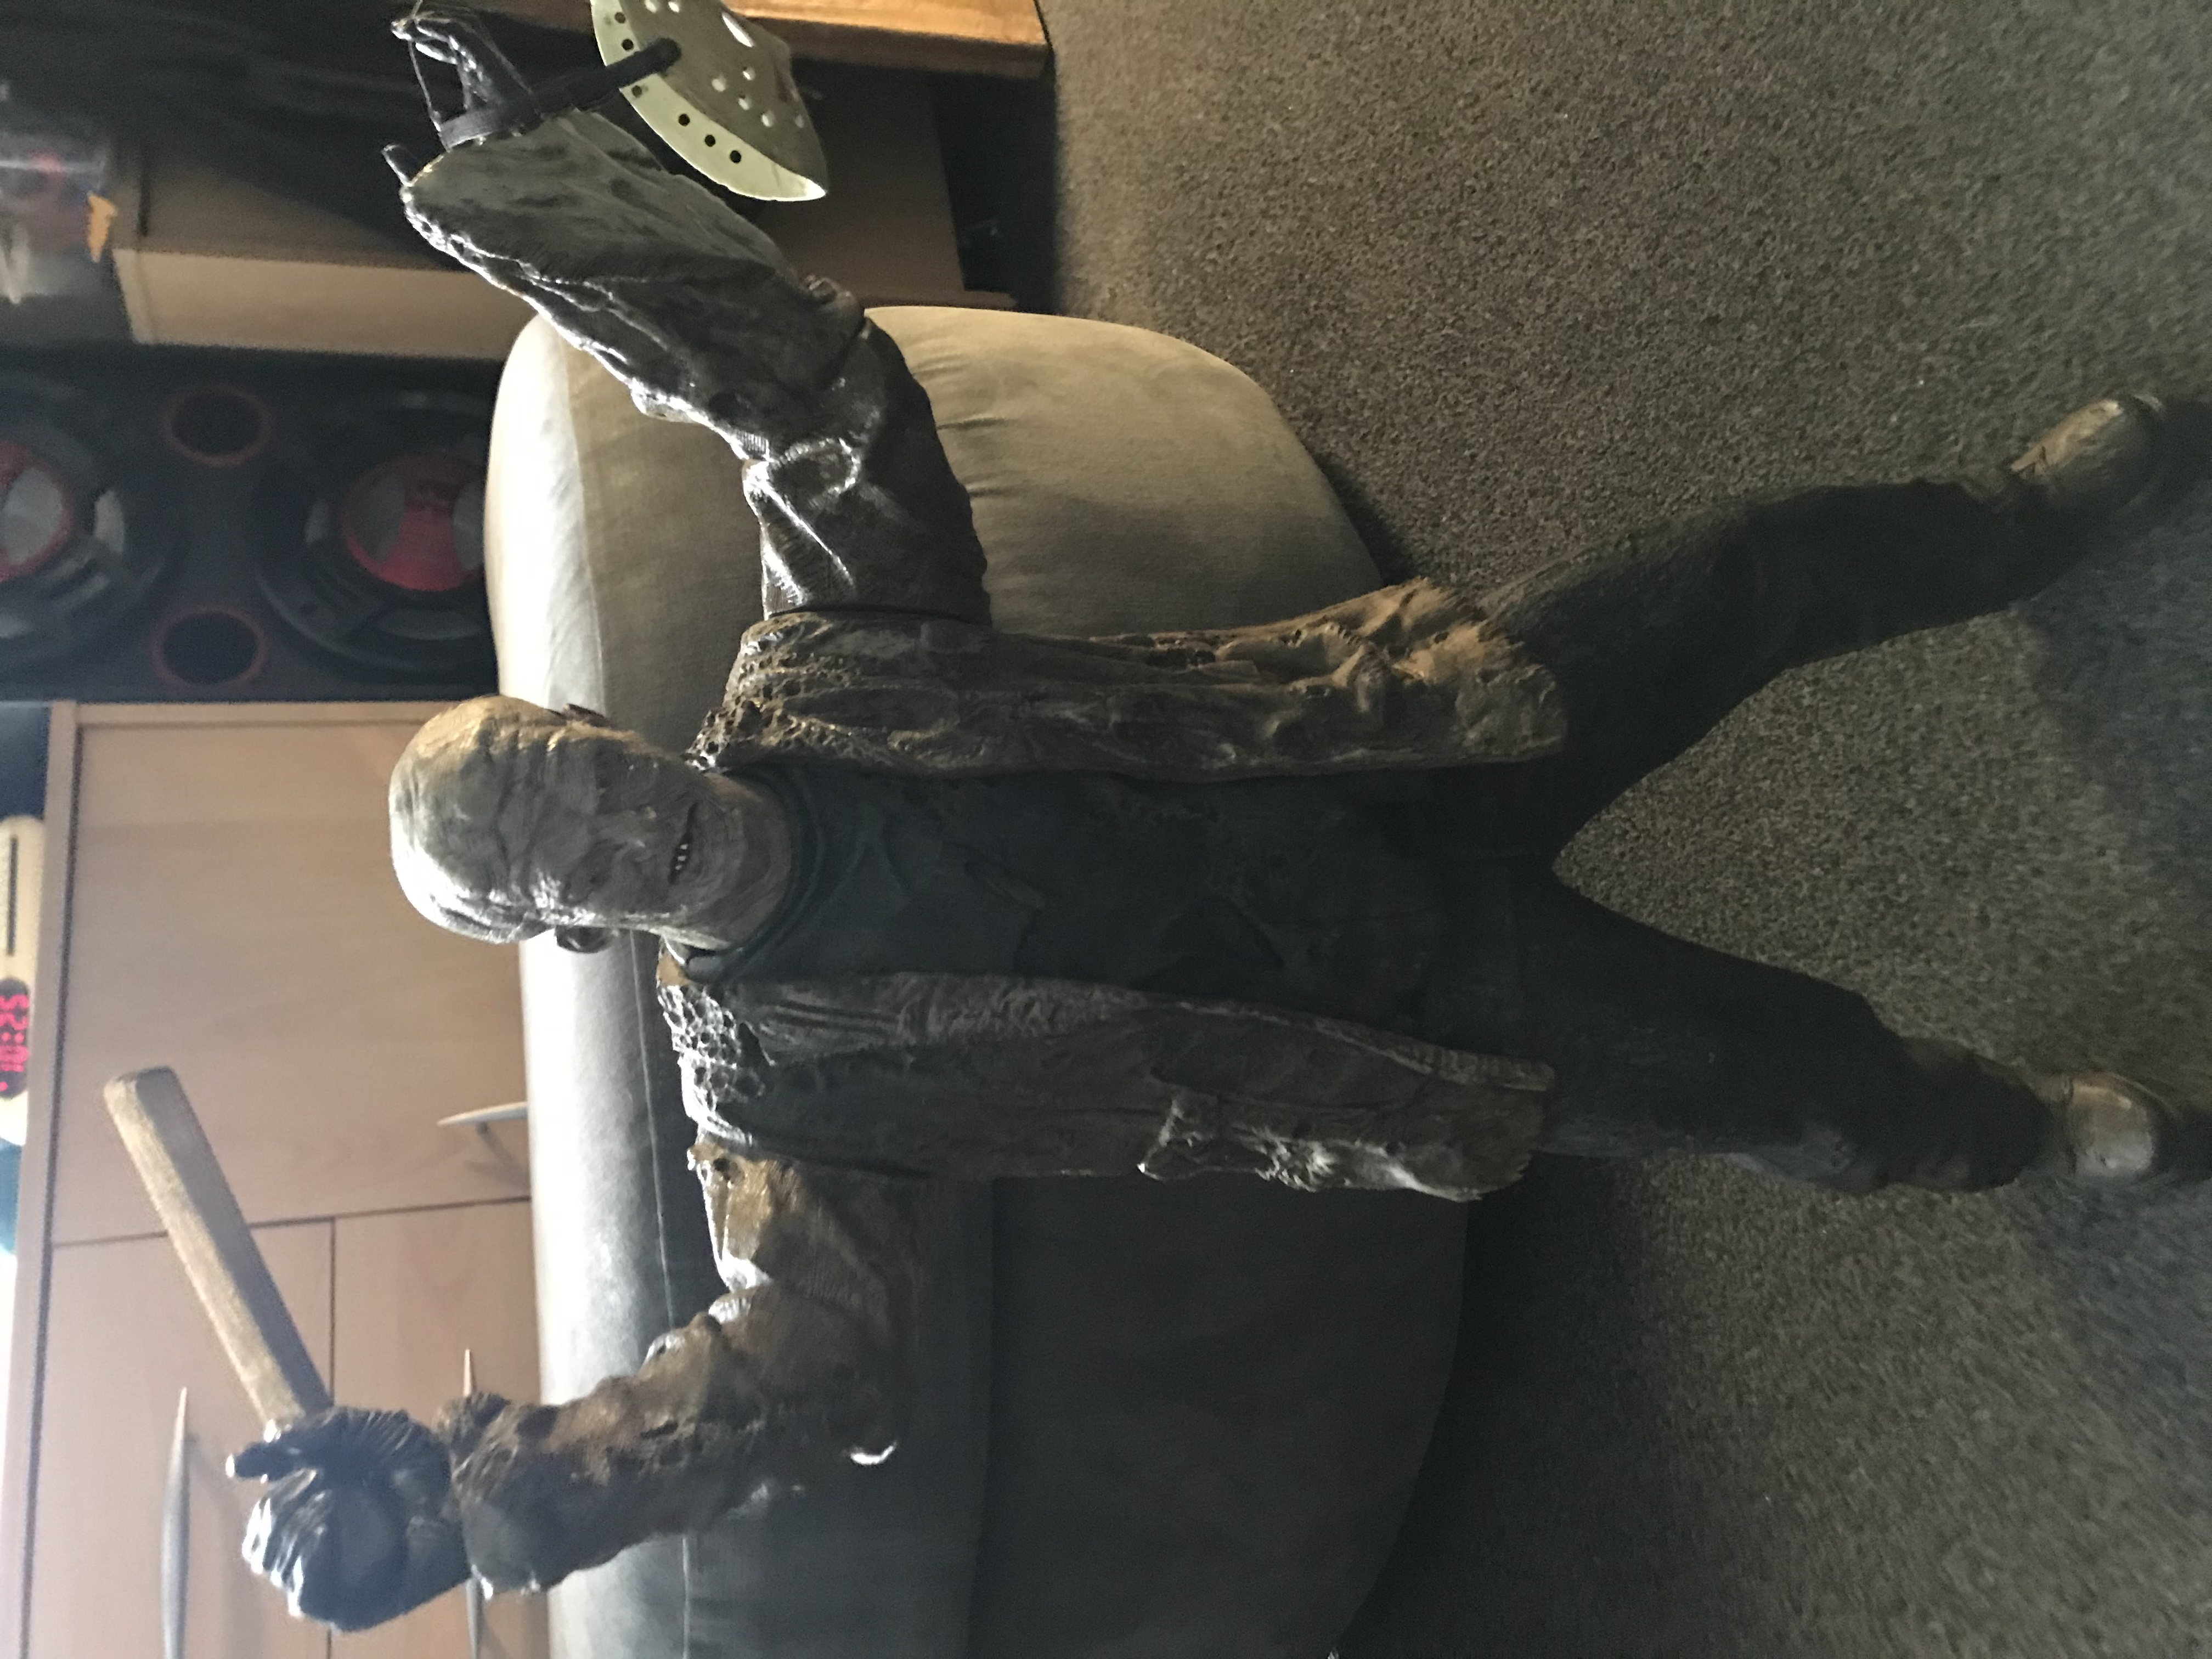 Neca 20 inch Jason vs Freddy figure  Neca